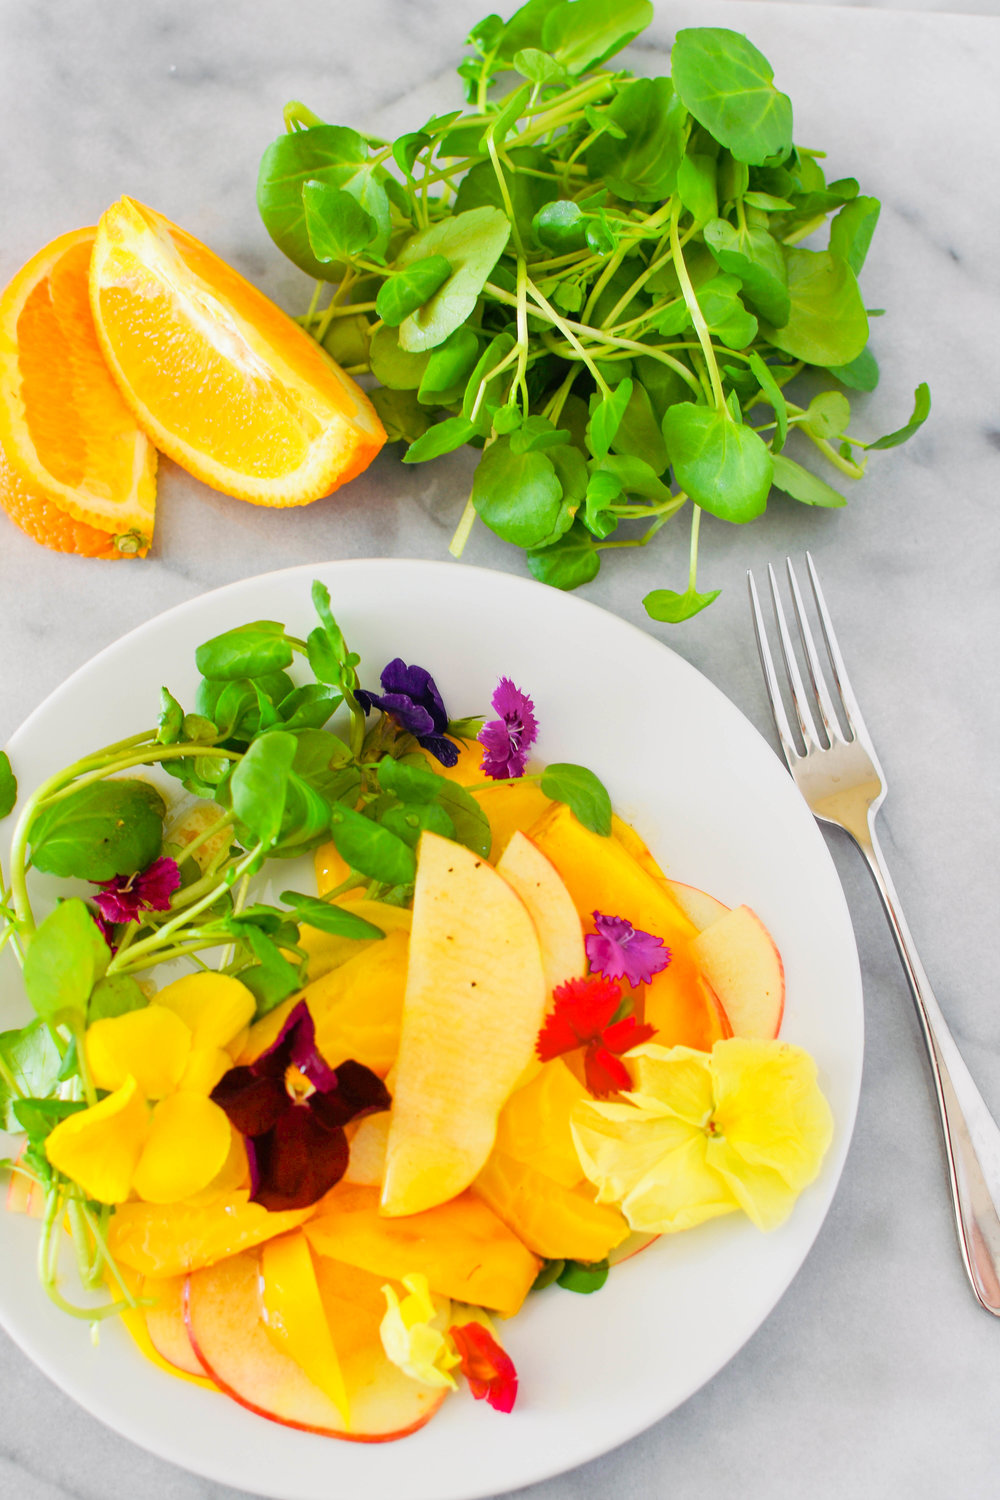 Beet, apple, and watercress salad with a zesty dressing. A wonderful, vegan side salad or main course | This Healthy Table